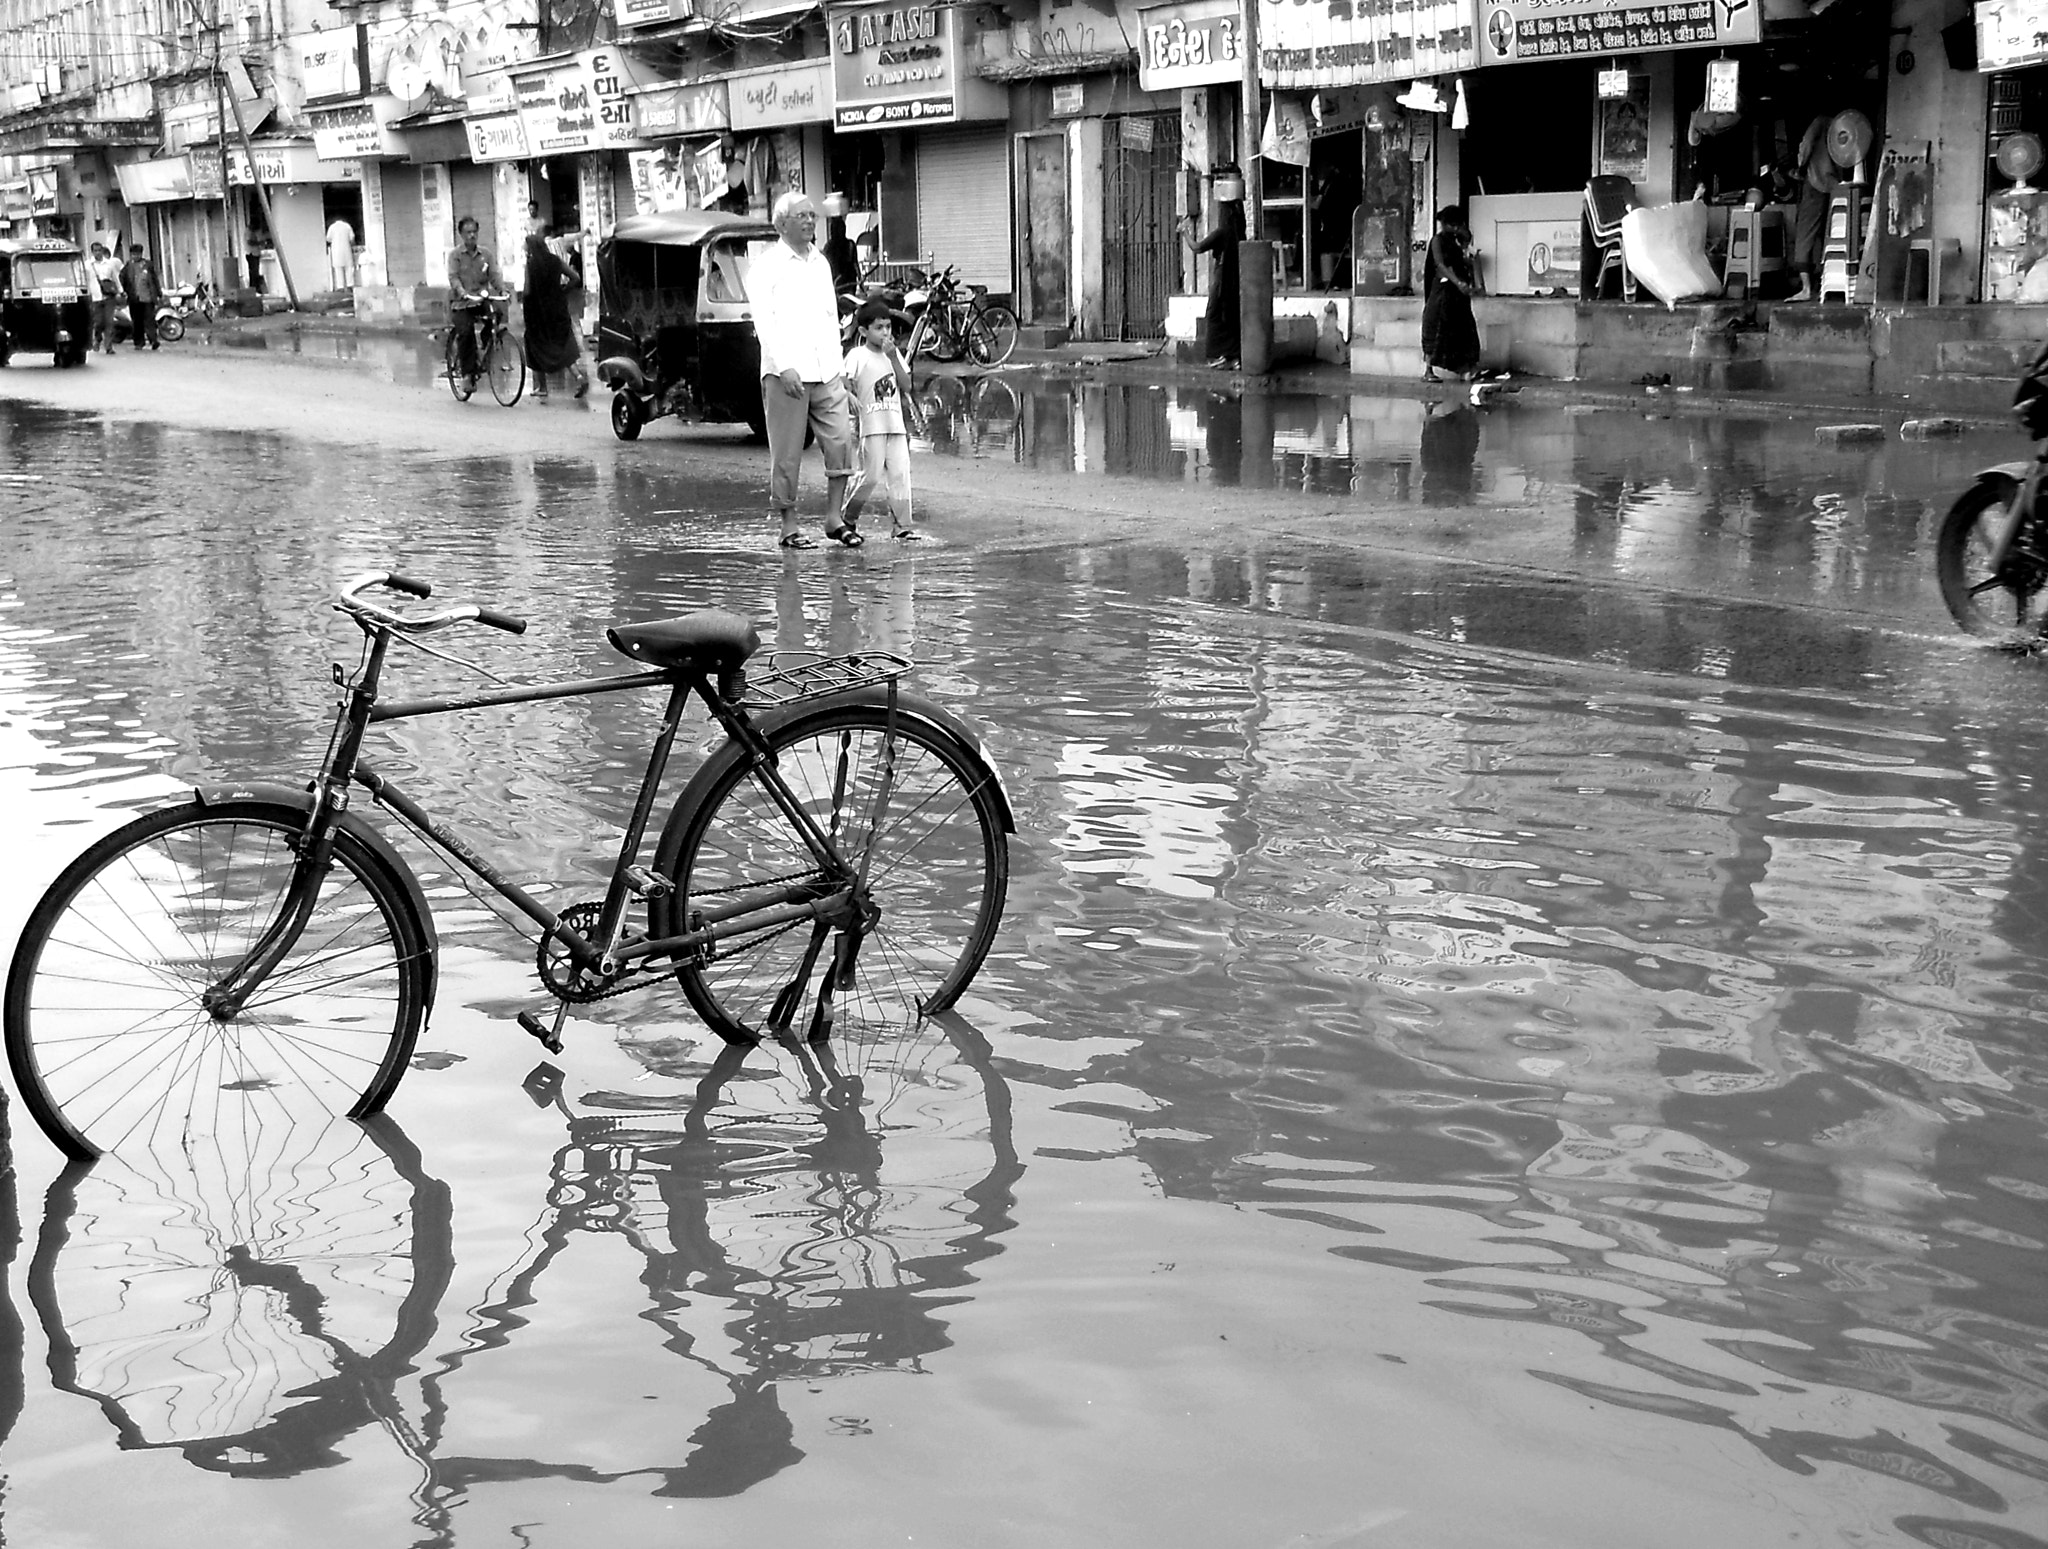 Photograph Puddle Parking by Naveed Dadan on 500px